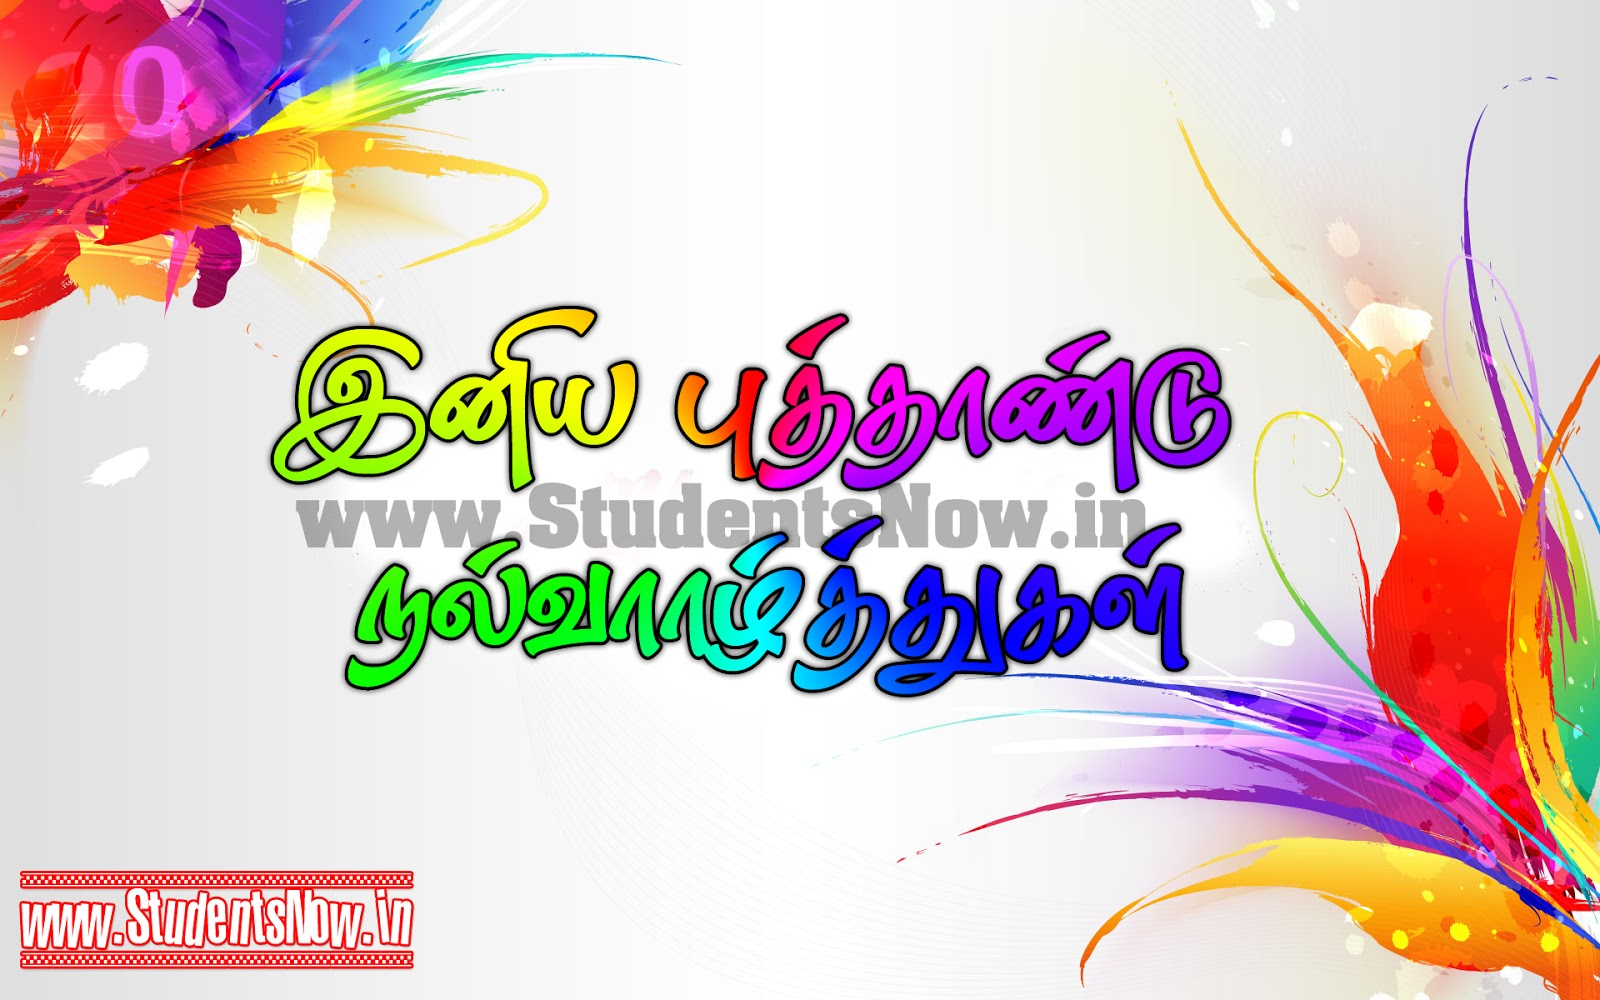 New Year 2013 Greetings in Tamil. 1600 x 1000.New Year Wishes For Lover Kamakathaikal In Tamil Actress